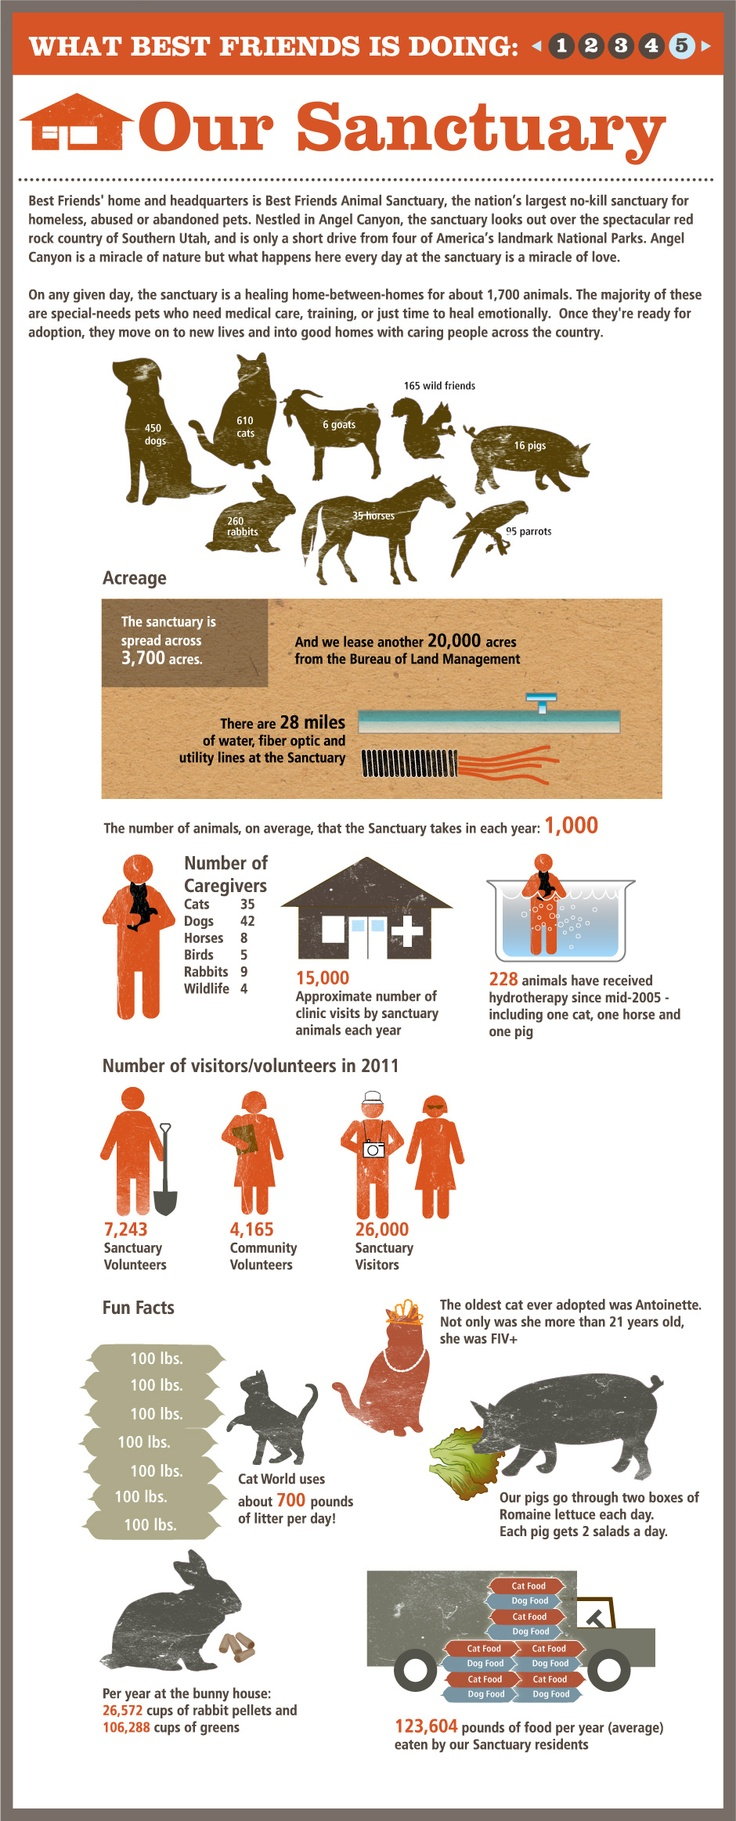 Best Friends Animal Society tells their story with an infographic series